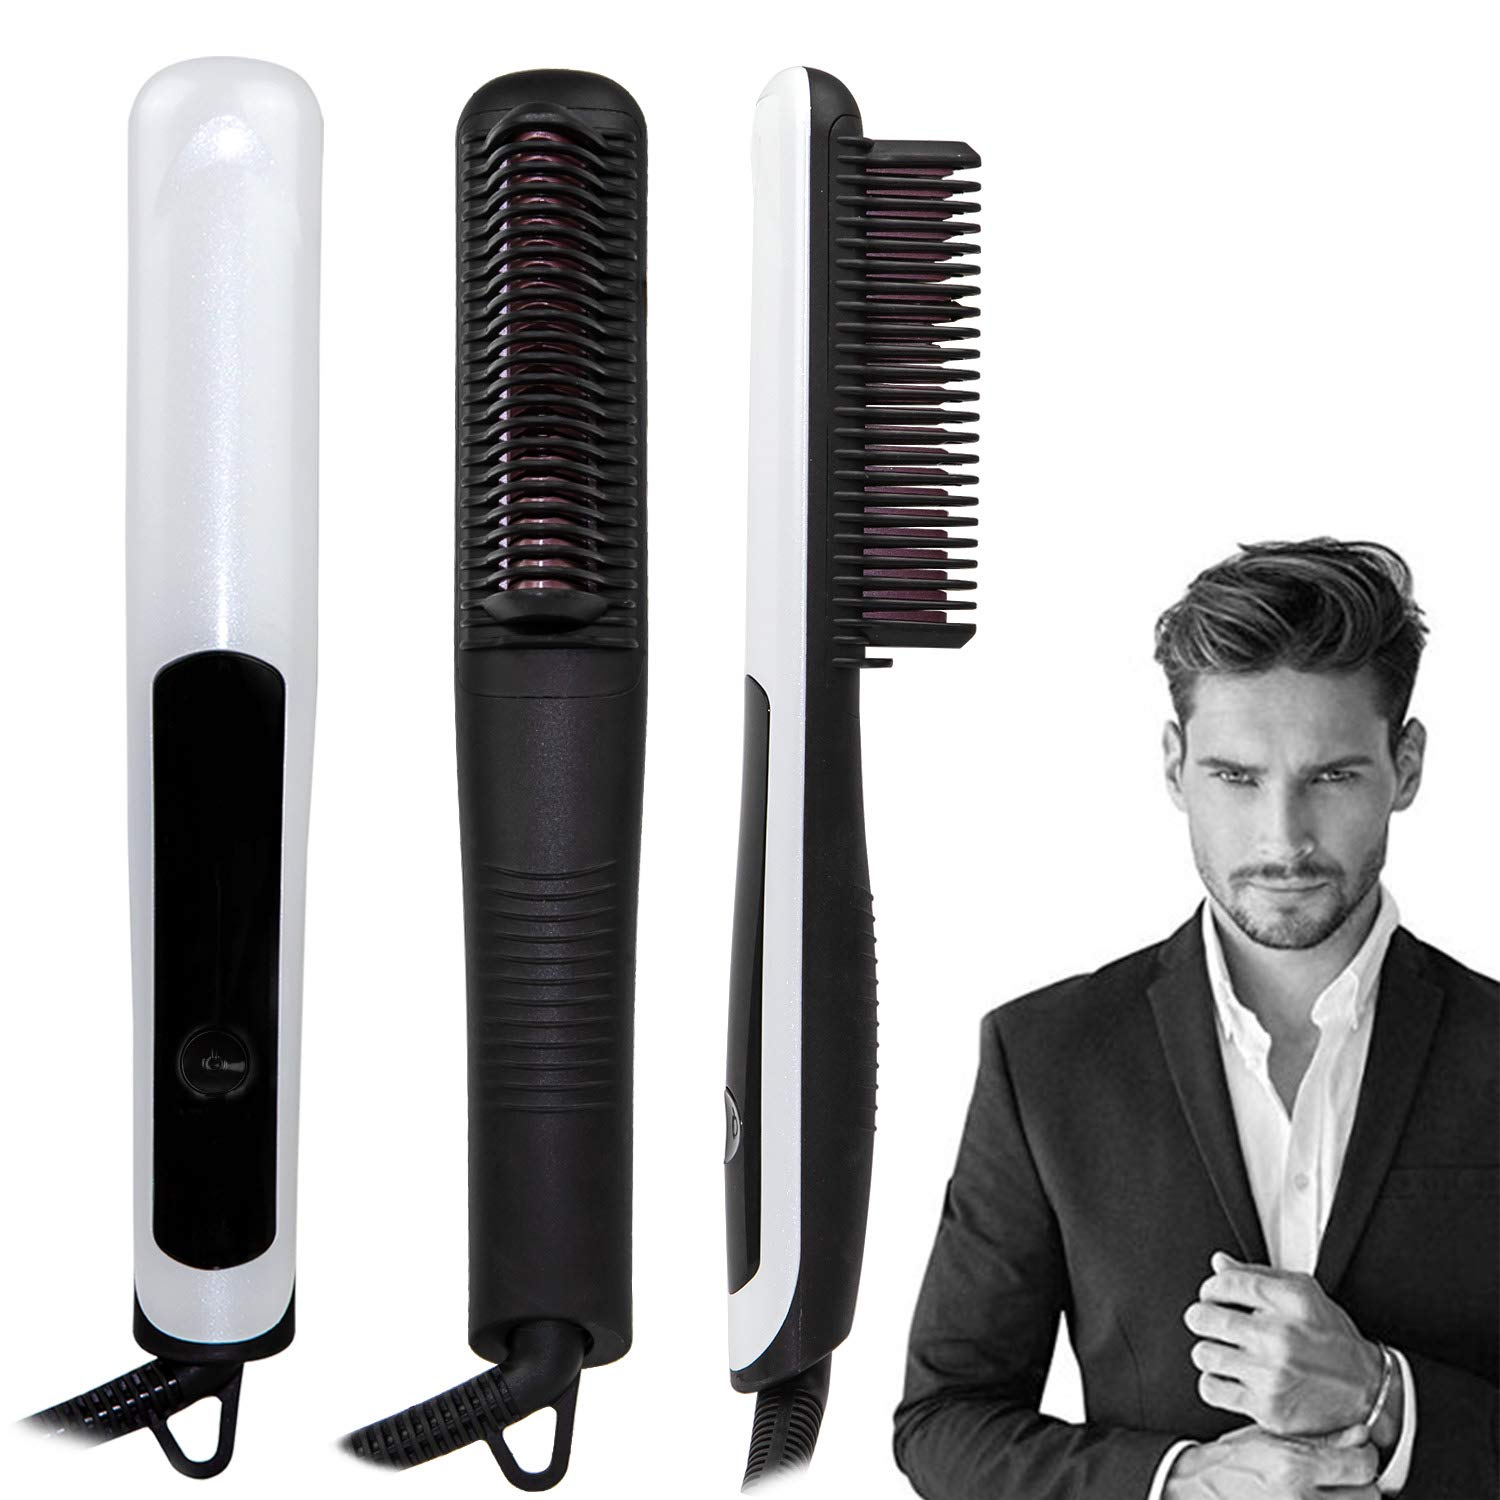 Beard Straightener, Multifunctional Hair Styler Hair Straightener for Men and Women 3 Heat Setting Ceramic Hair Straightening LED Display Anti-scalding Comb Teeth with Dual Voltage 110-240V